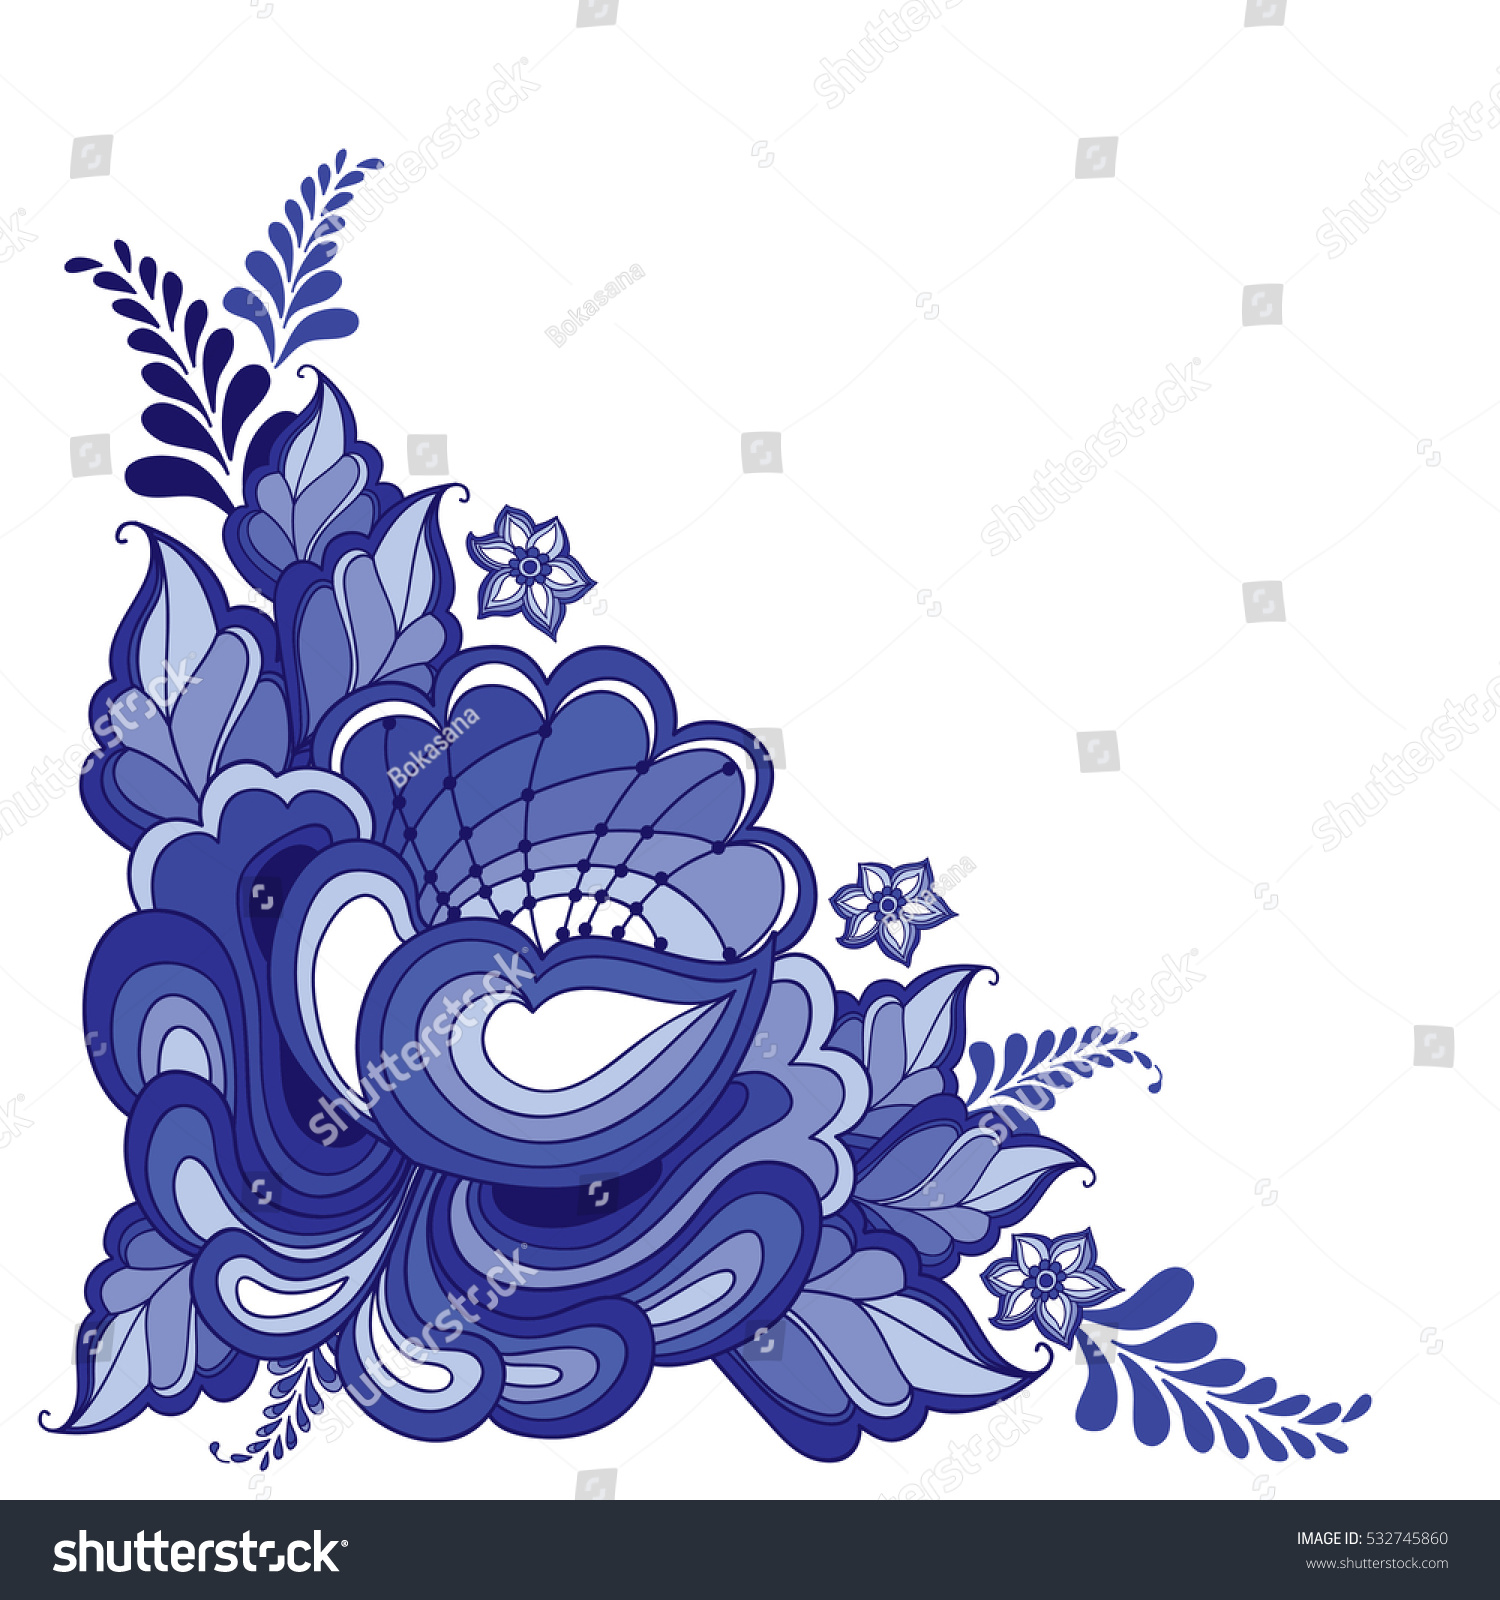 Artistic floral element abstract gzhel folk art blue flowers stock - Vector Illustration With Corner Floral Motif In Traditional Russian Style Gzhel Isolated On White Ornate